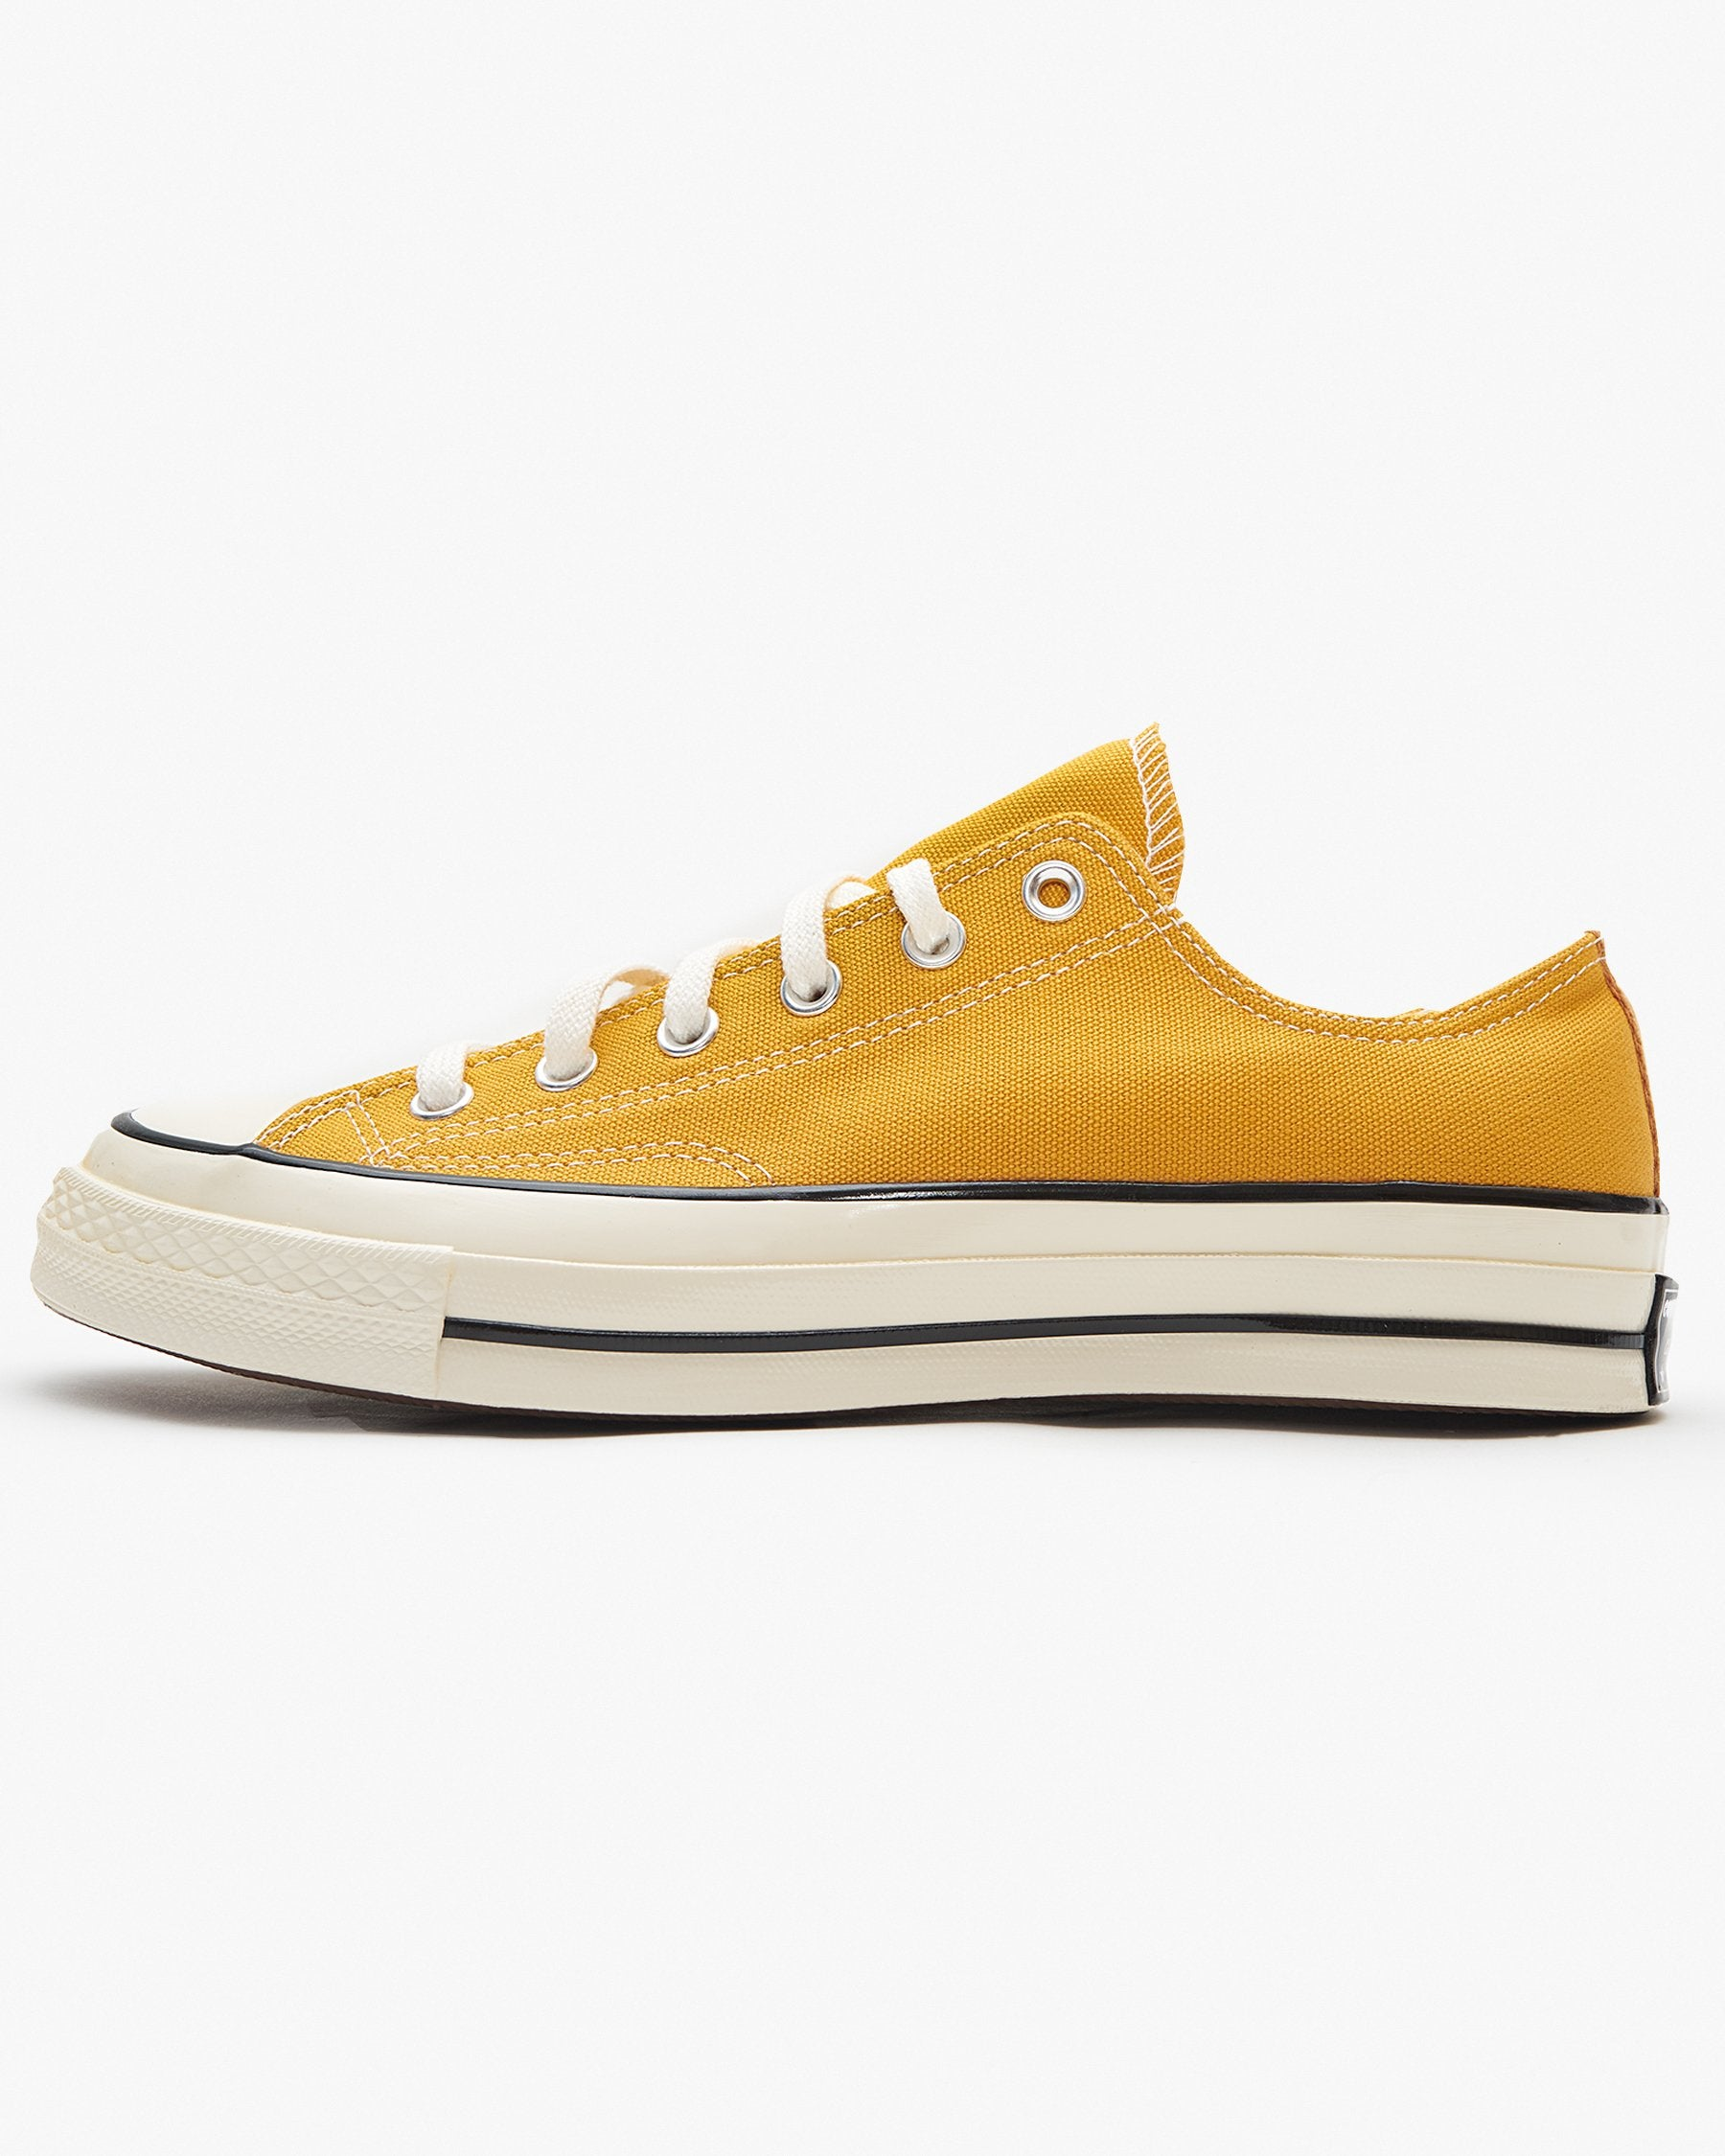 Converse Chuck 70 Low - Sunflower / Black / Egret UK 7 162063C7 888755678213 Converse Trainers